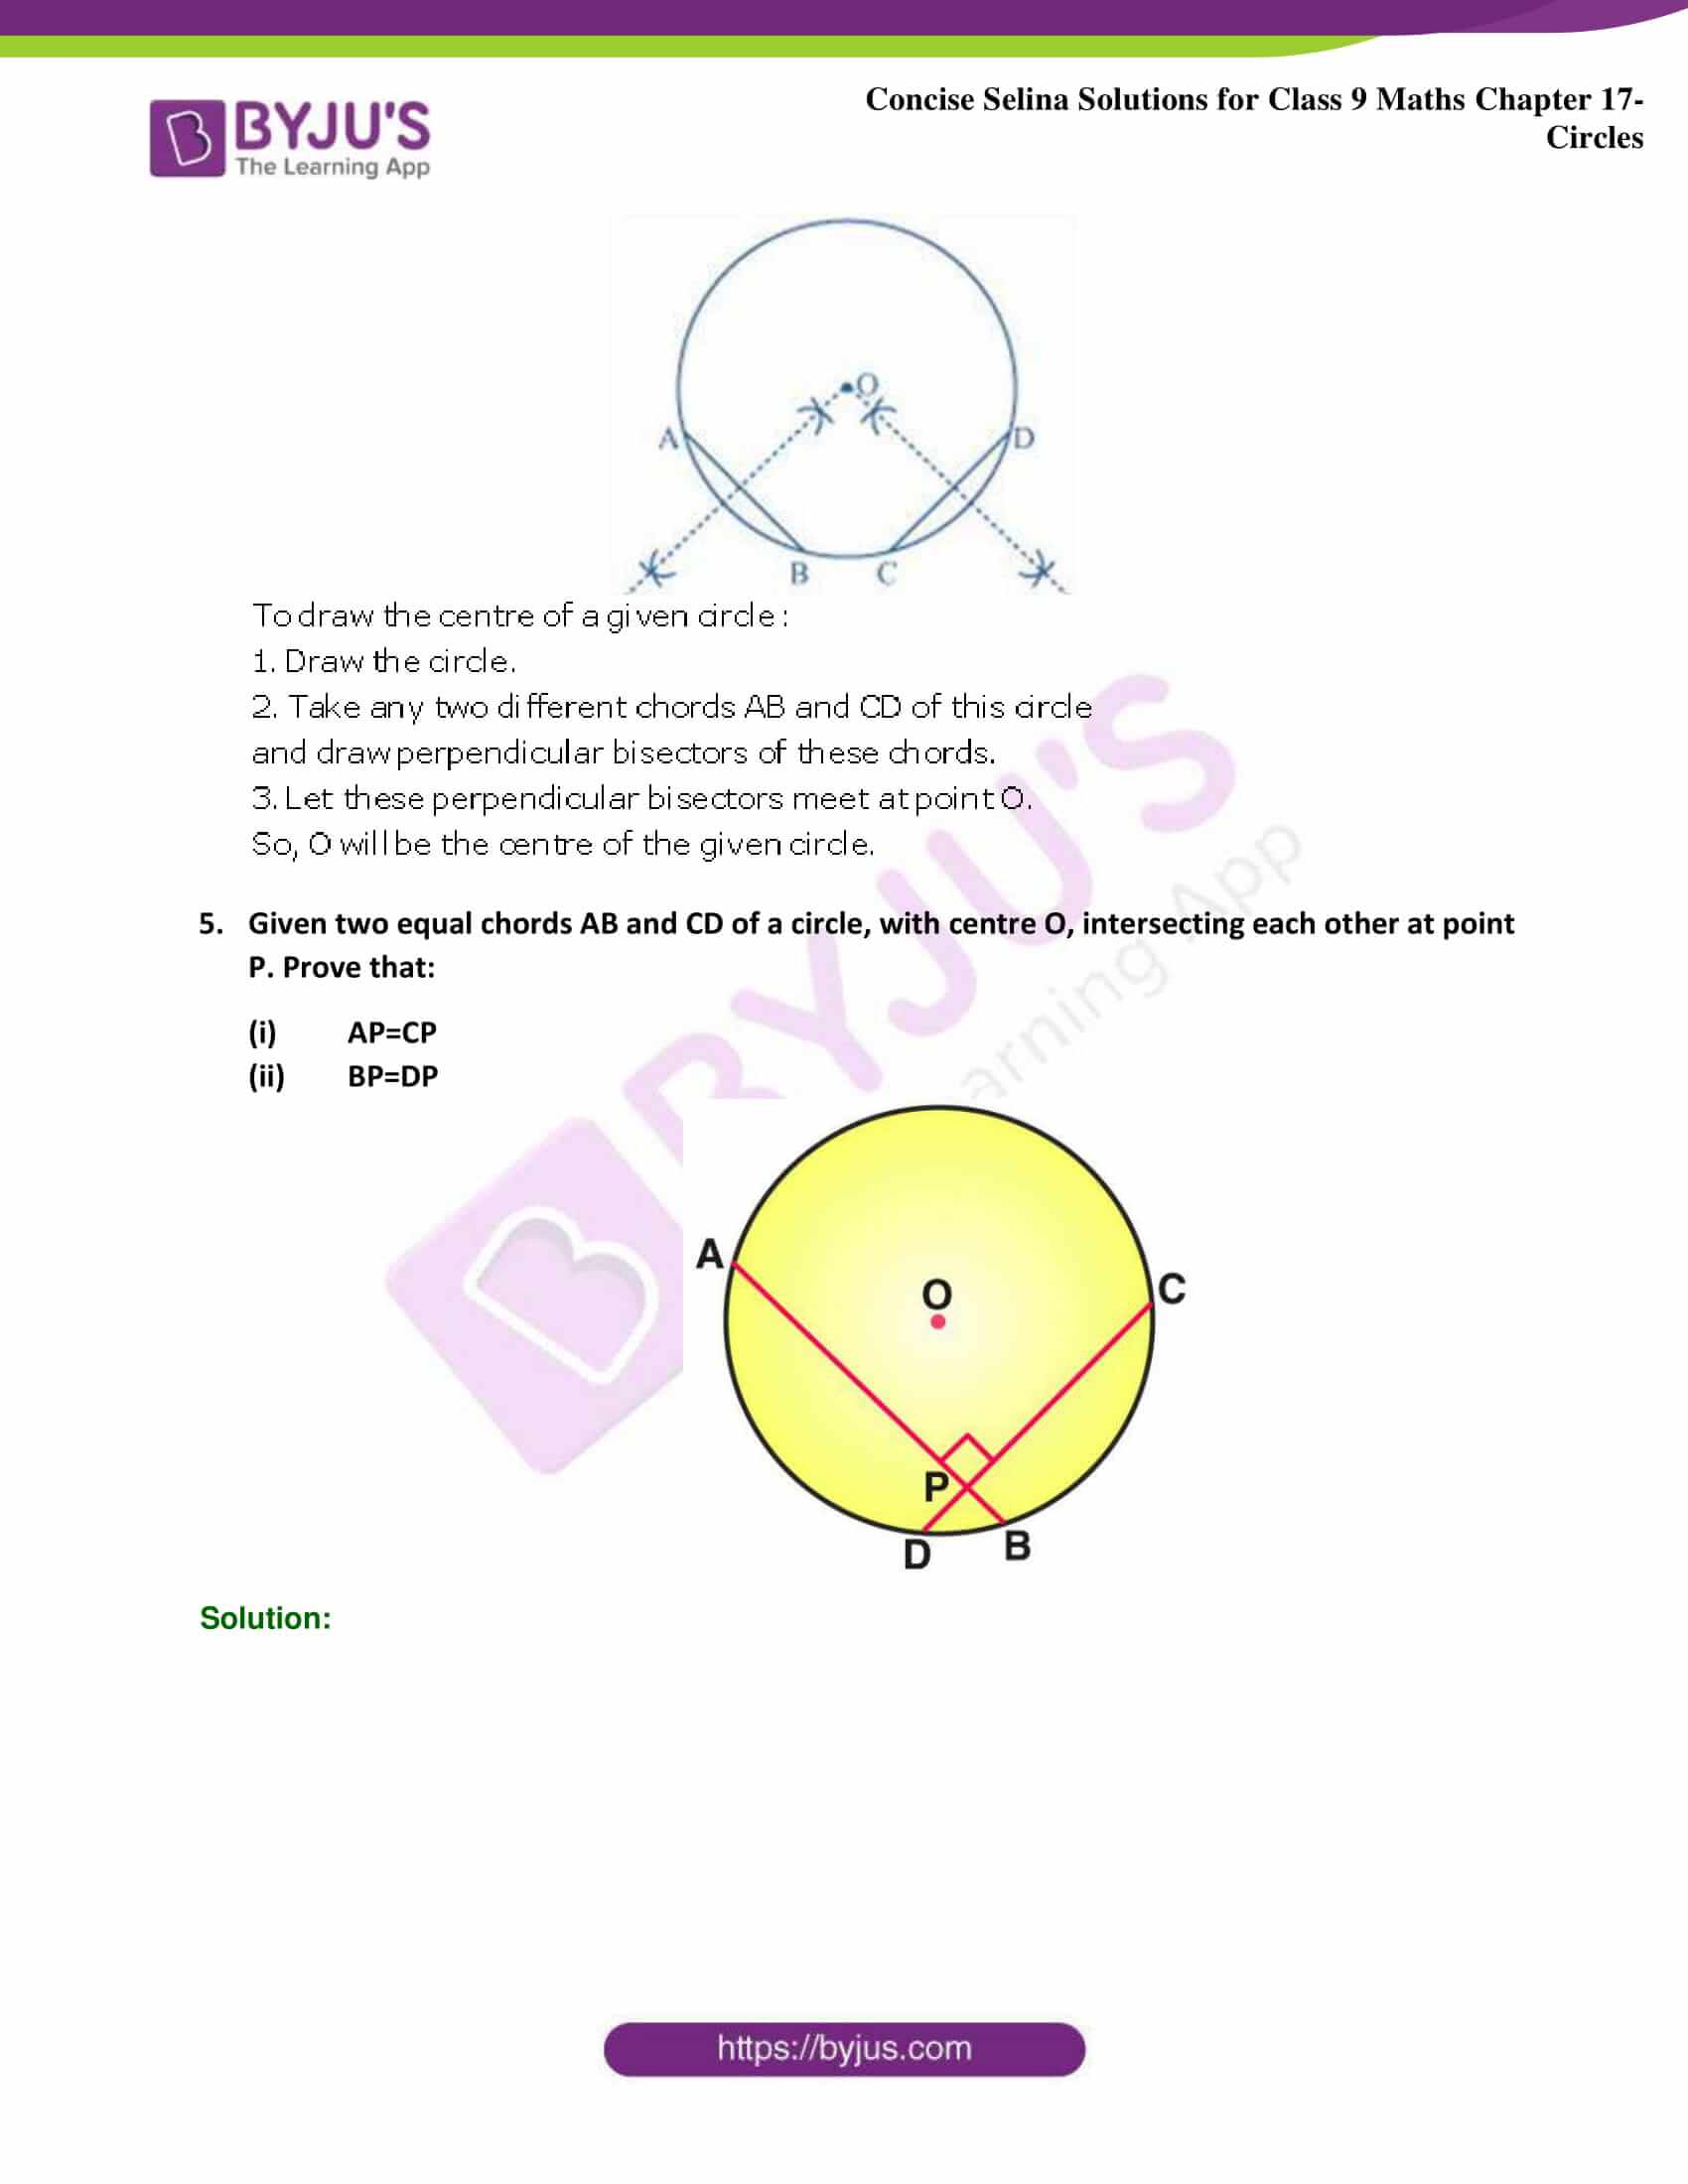 Concise Selina Solutions Class 9 Maths Chapter 17 Circles part 31